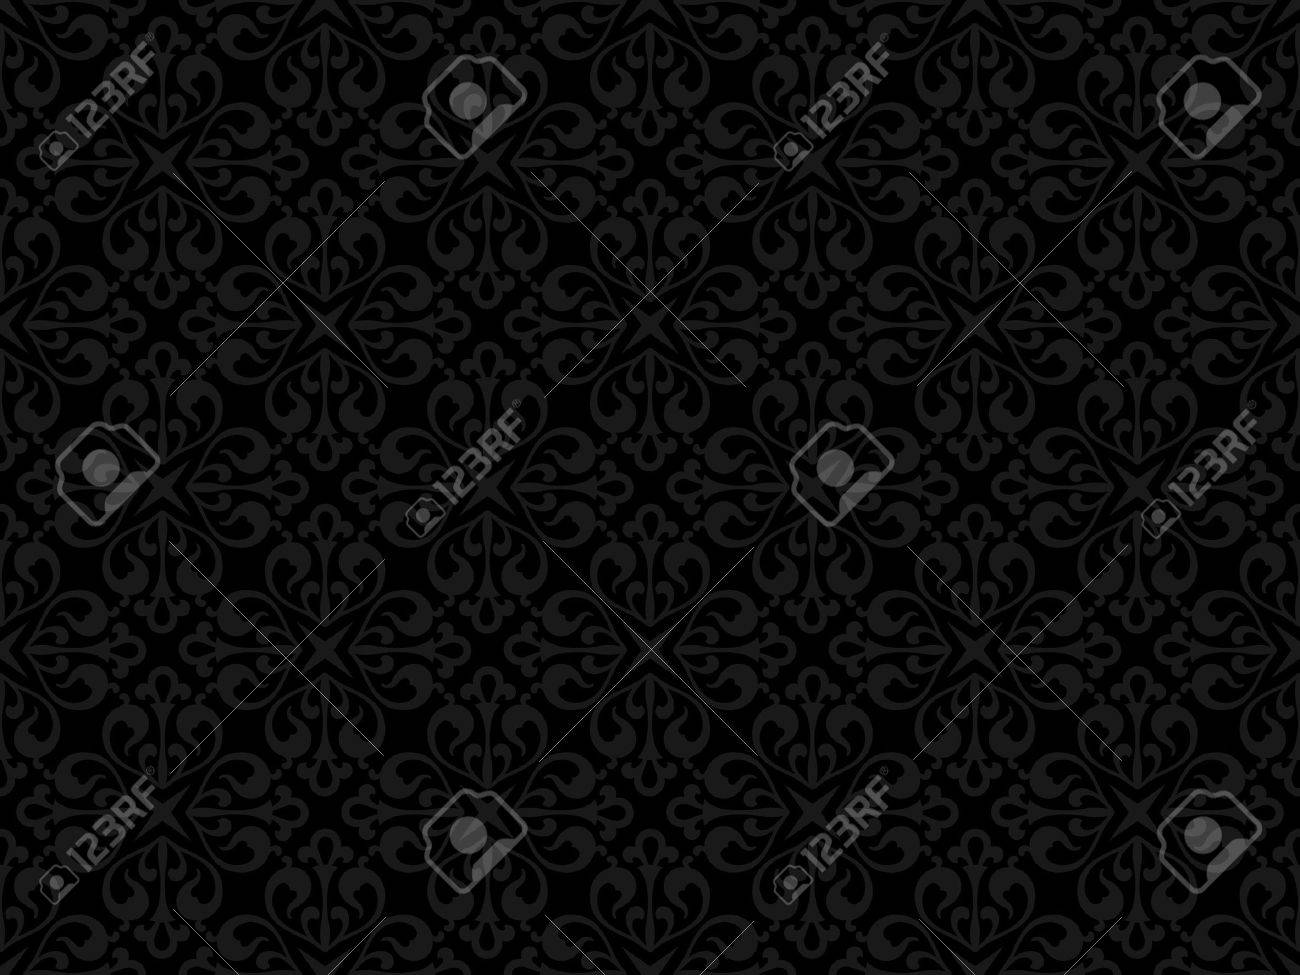 Floral seamless pattern - background for continuous replicate. See more seamless backgrounds in my portfolio. Stock Vector - 8098696